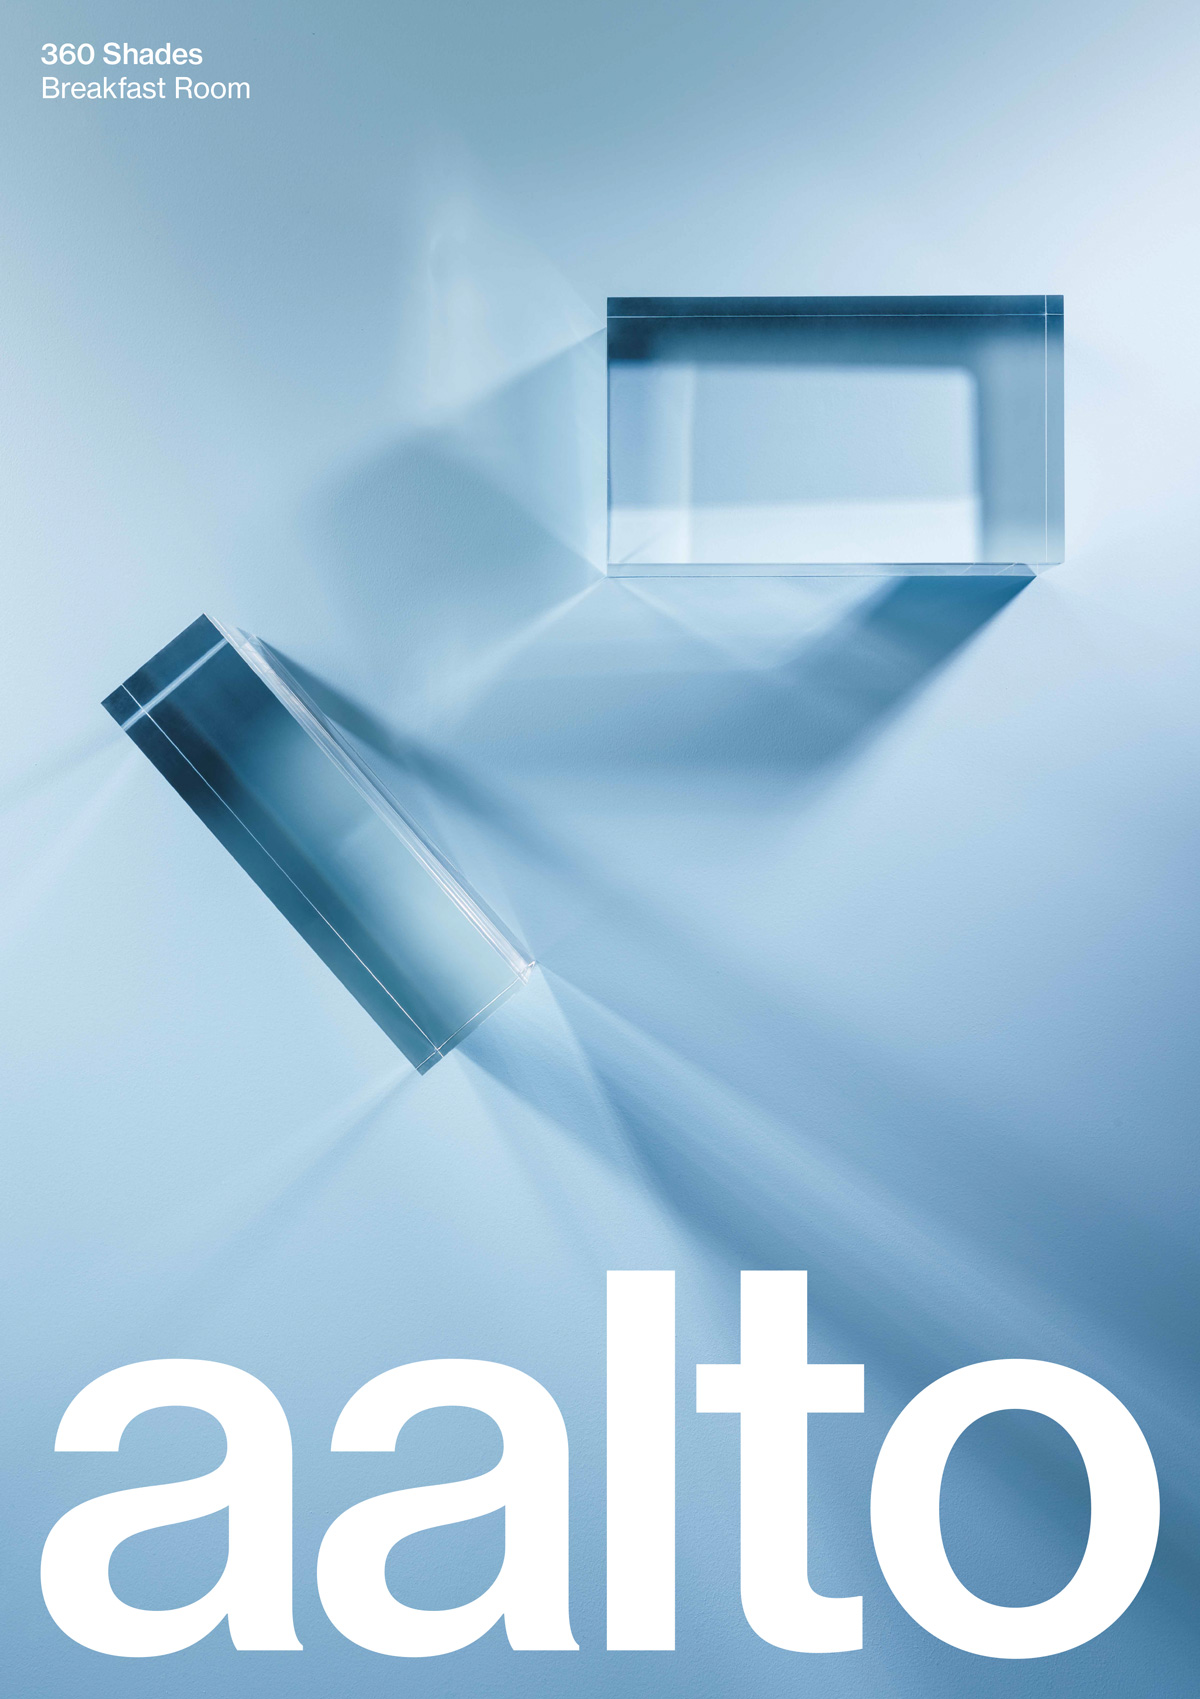 Aalto_Brand-Posters_A1-3.jpg